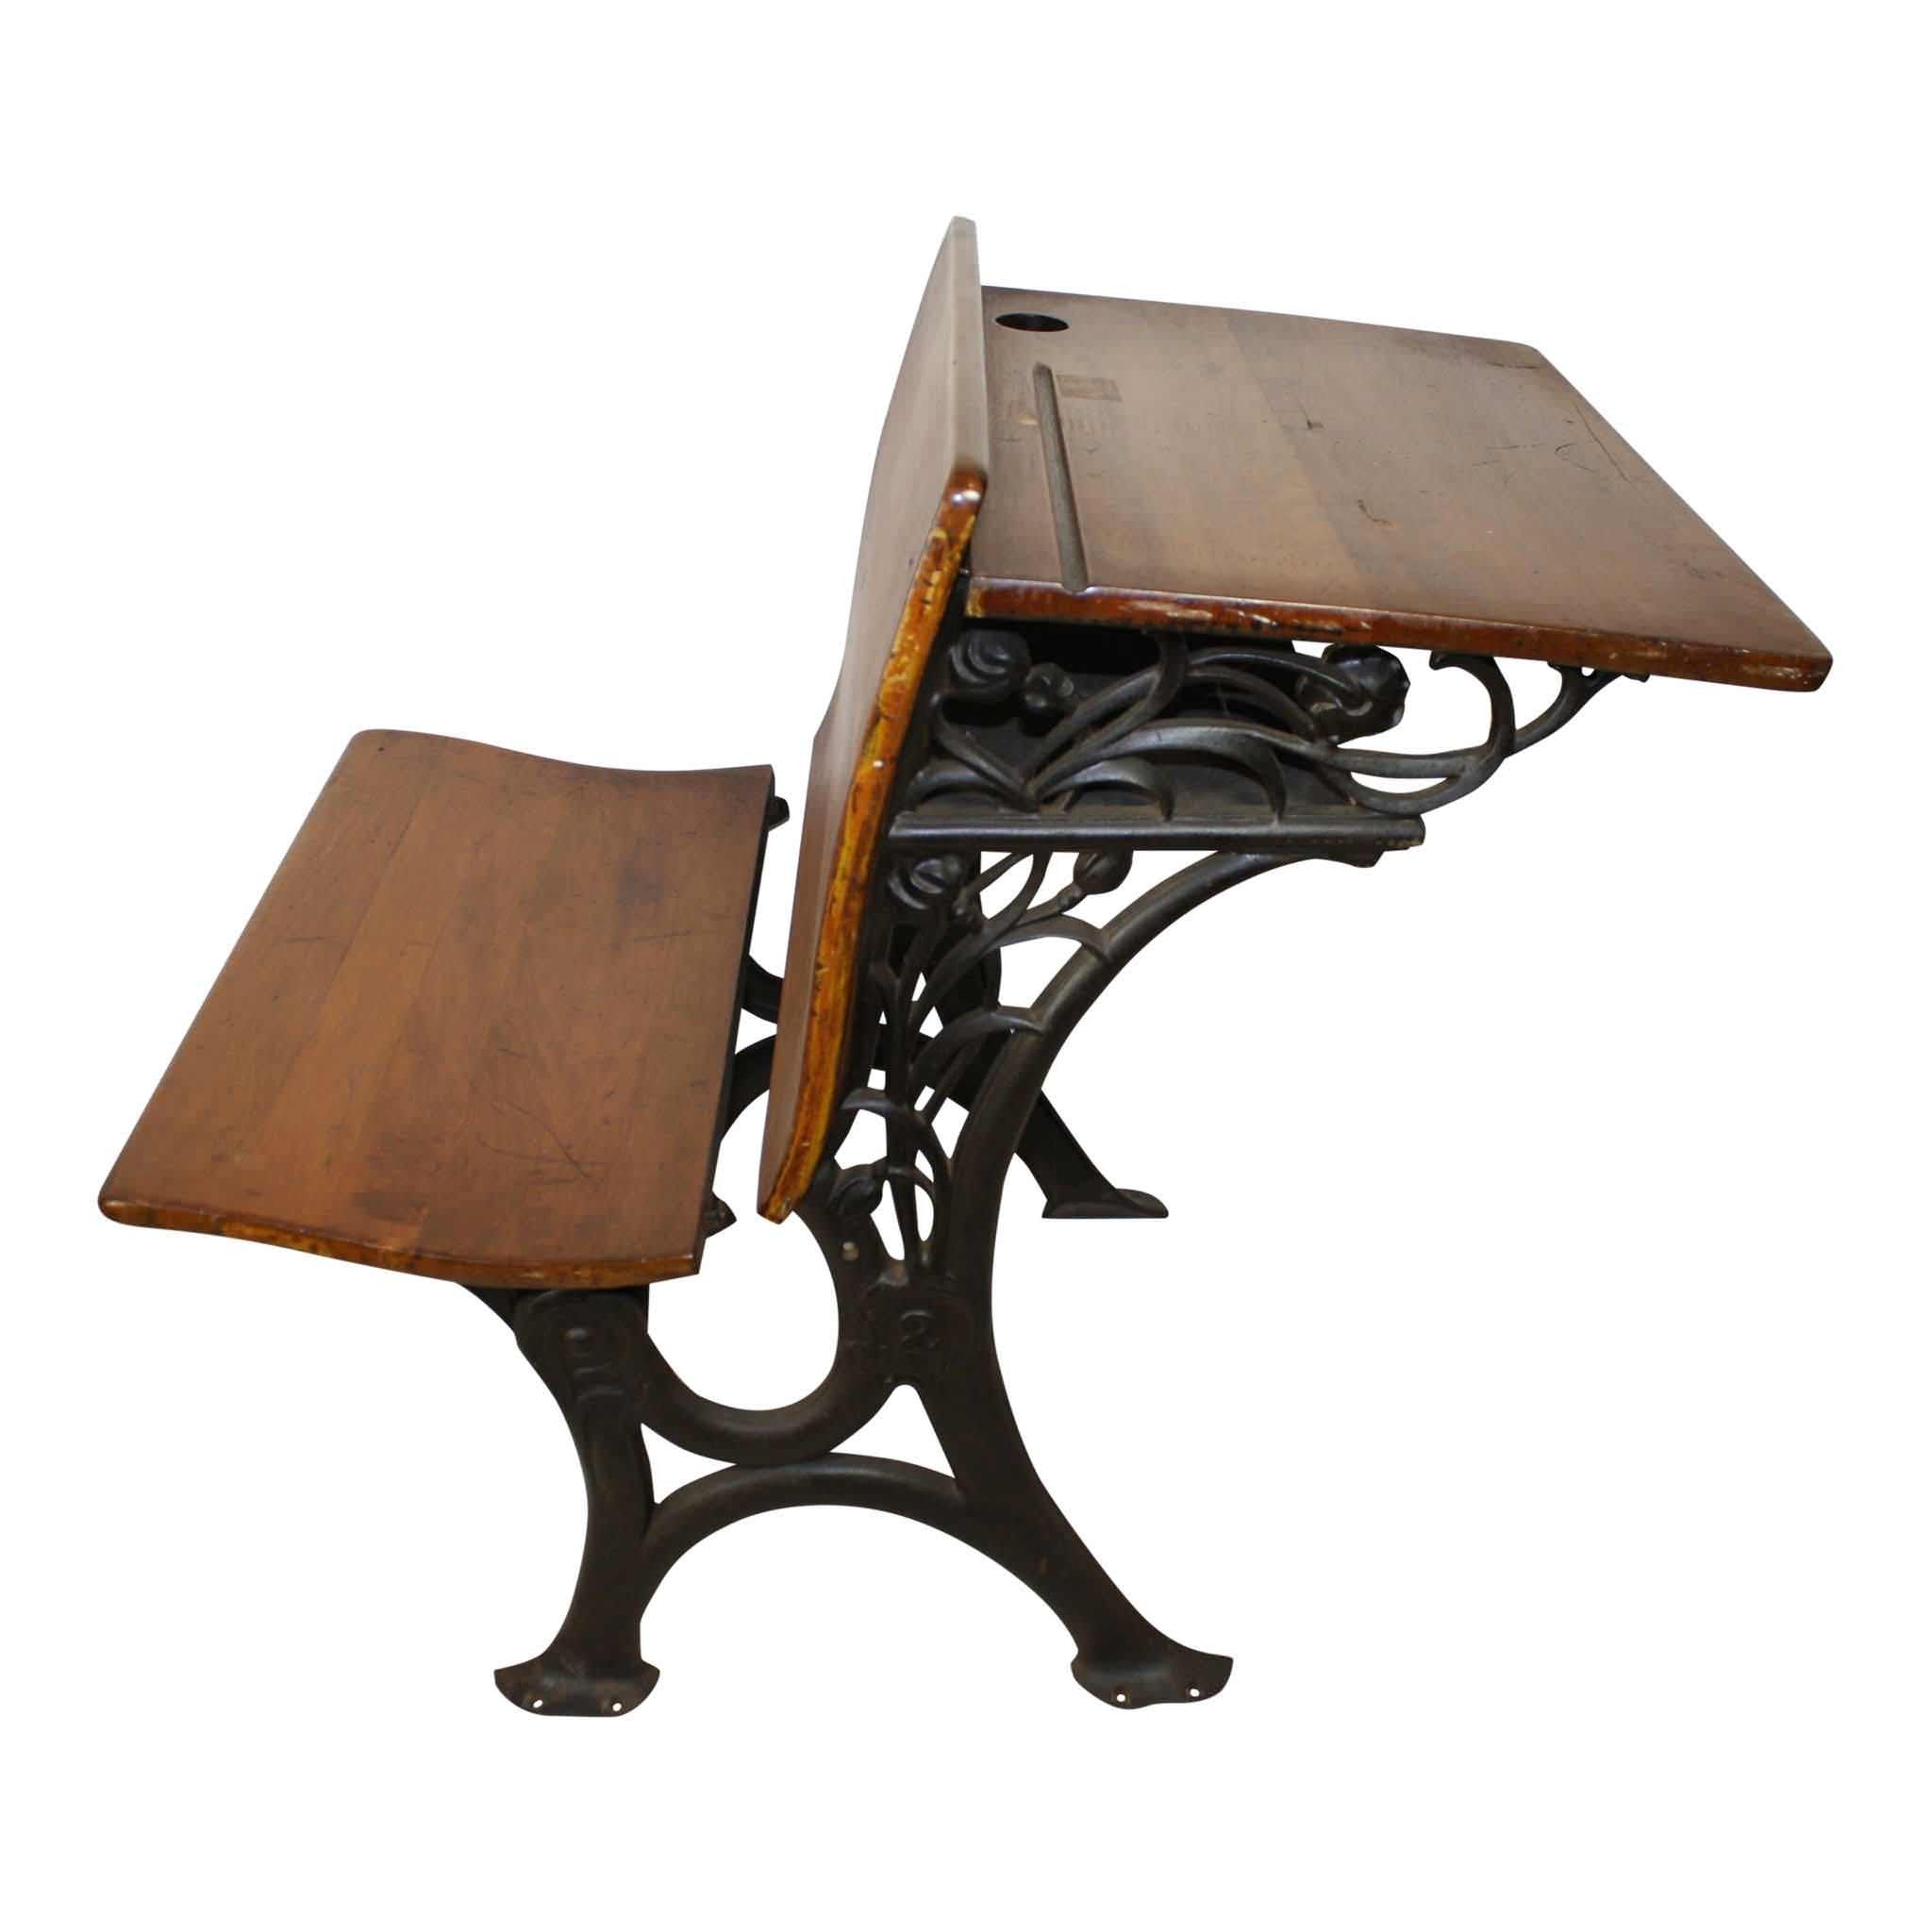 E. H. Stafford Mfg. Co. of Chicago School Desk